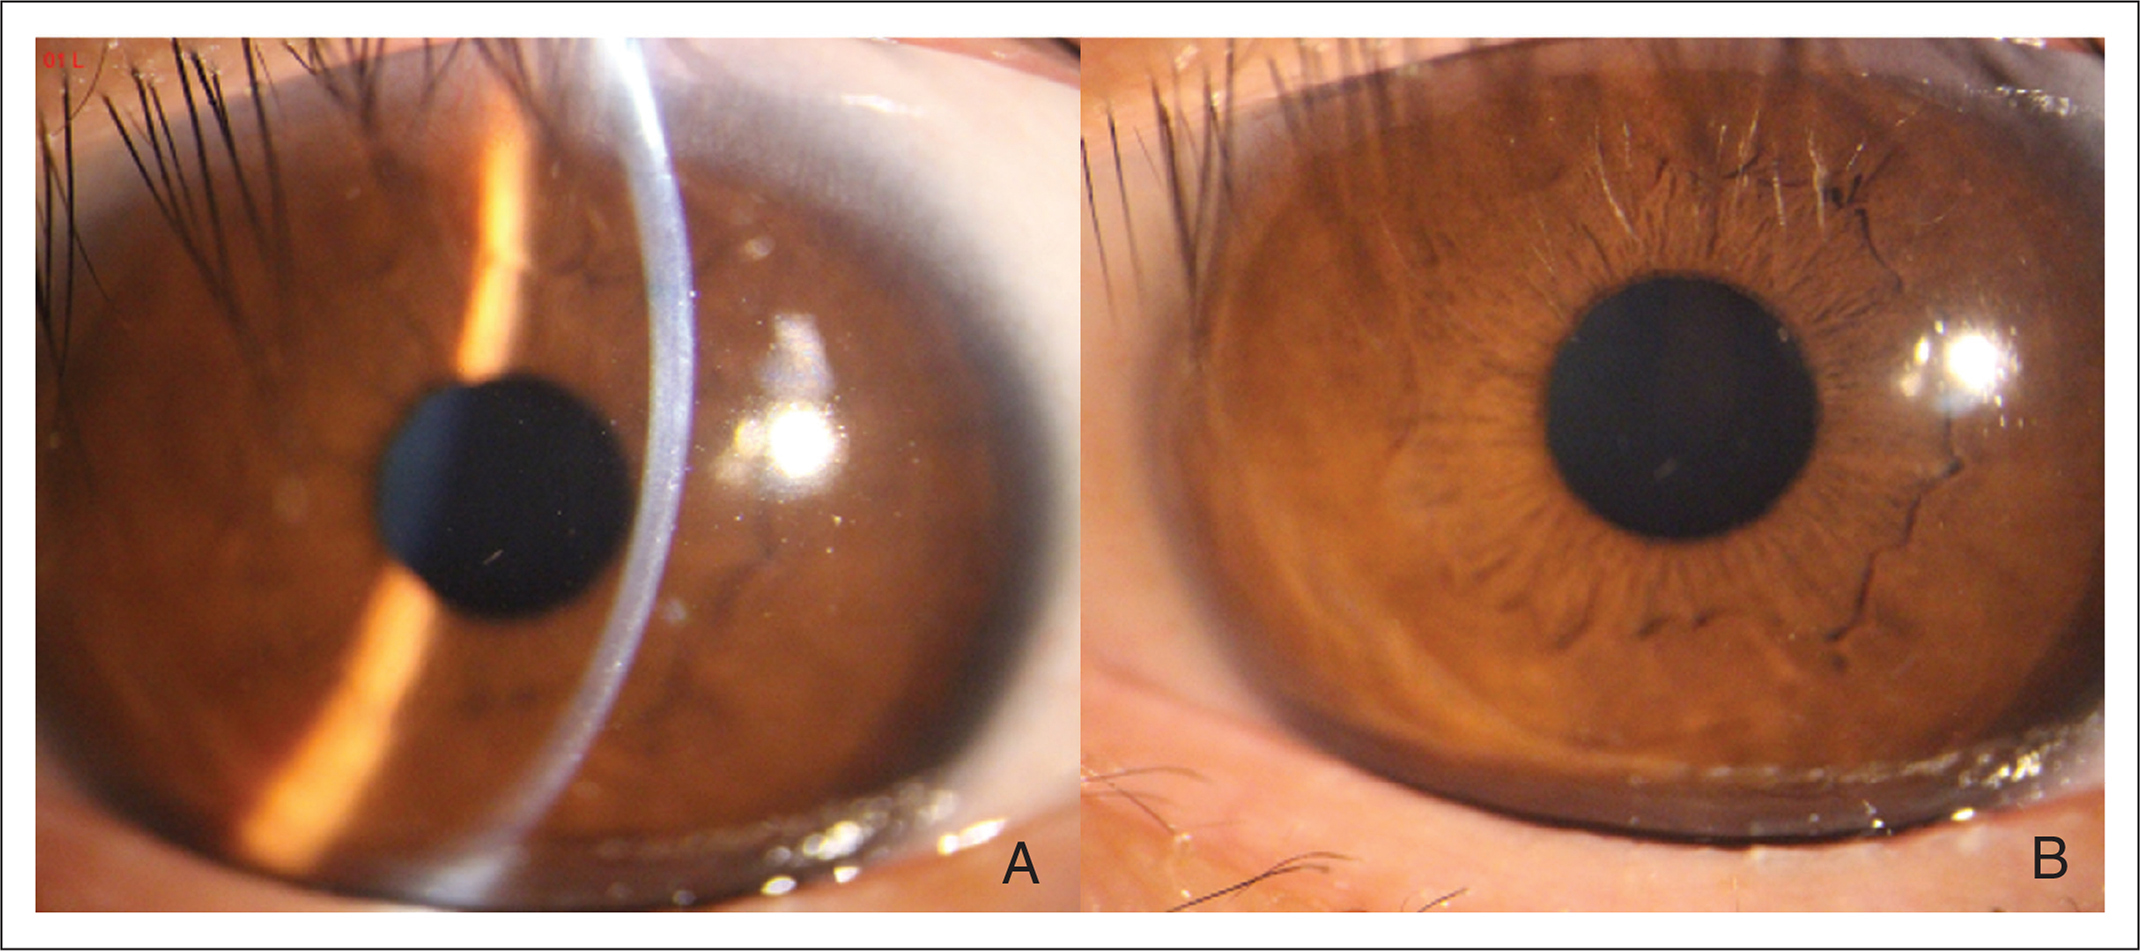 (A) Slit-lamp image and (B) diffuse light photograph of the cornea 2 years after surgery.